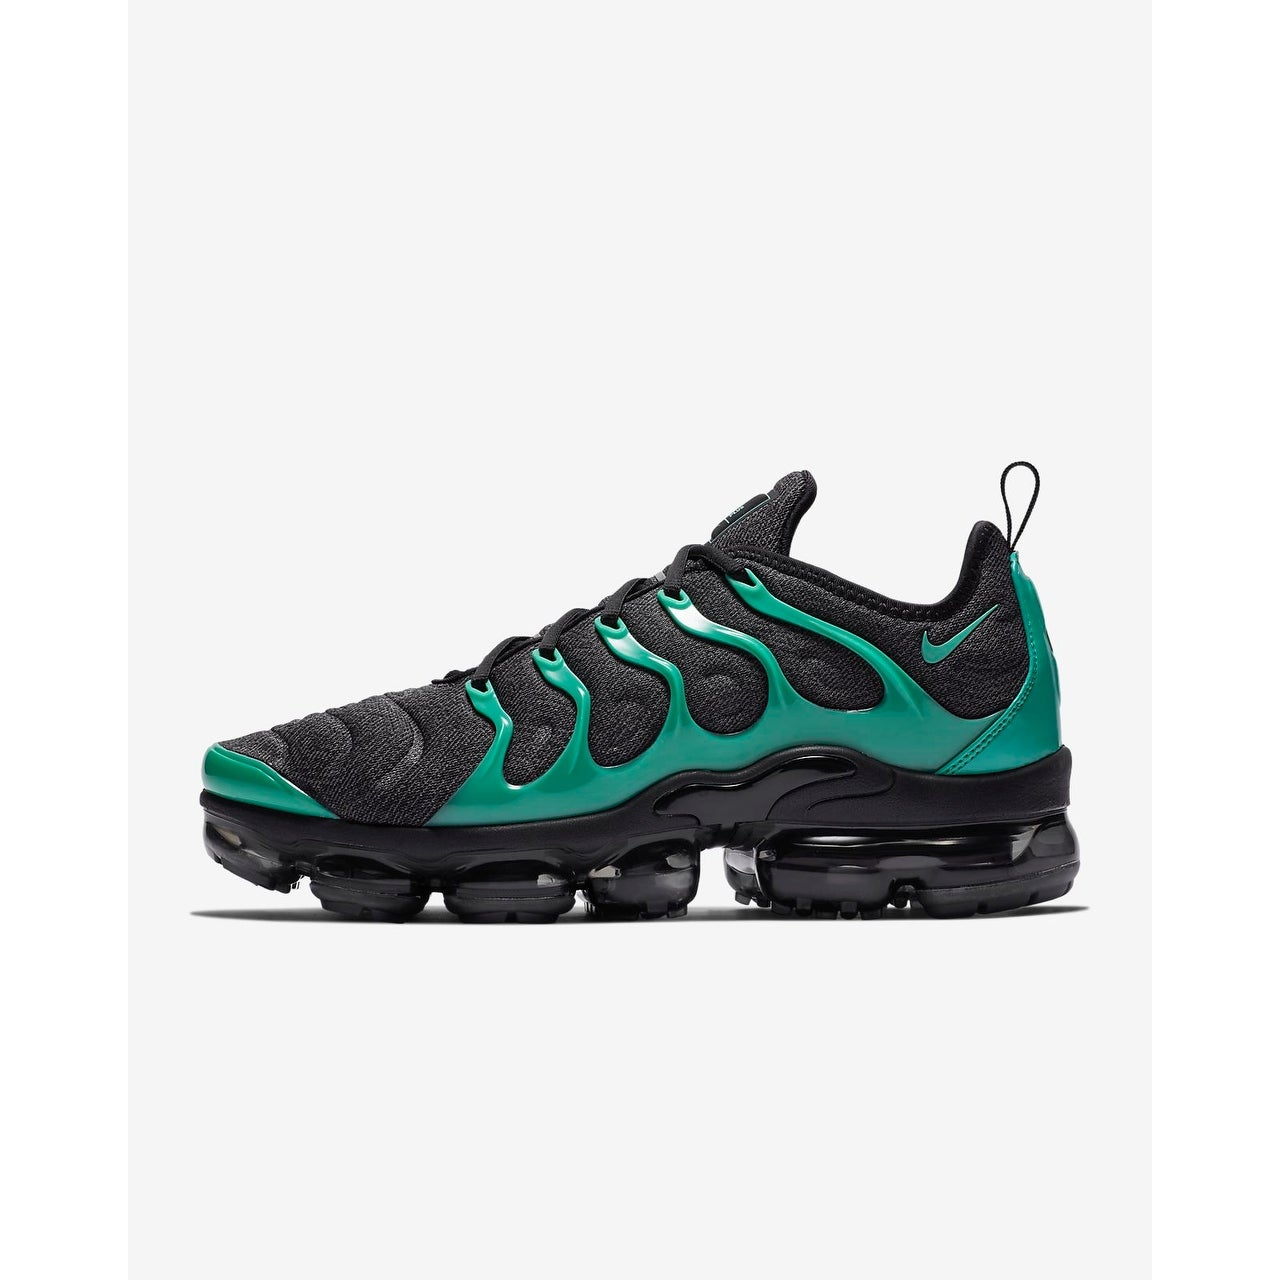 00566a0a43 Shop Nike Air Vapormax Plus Black/Clear Emerald-Cool Grey (924453 013) -  Ships To Canada - Overstock - 25772063